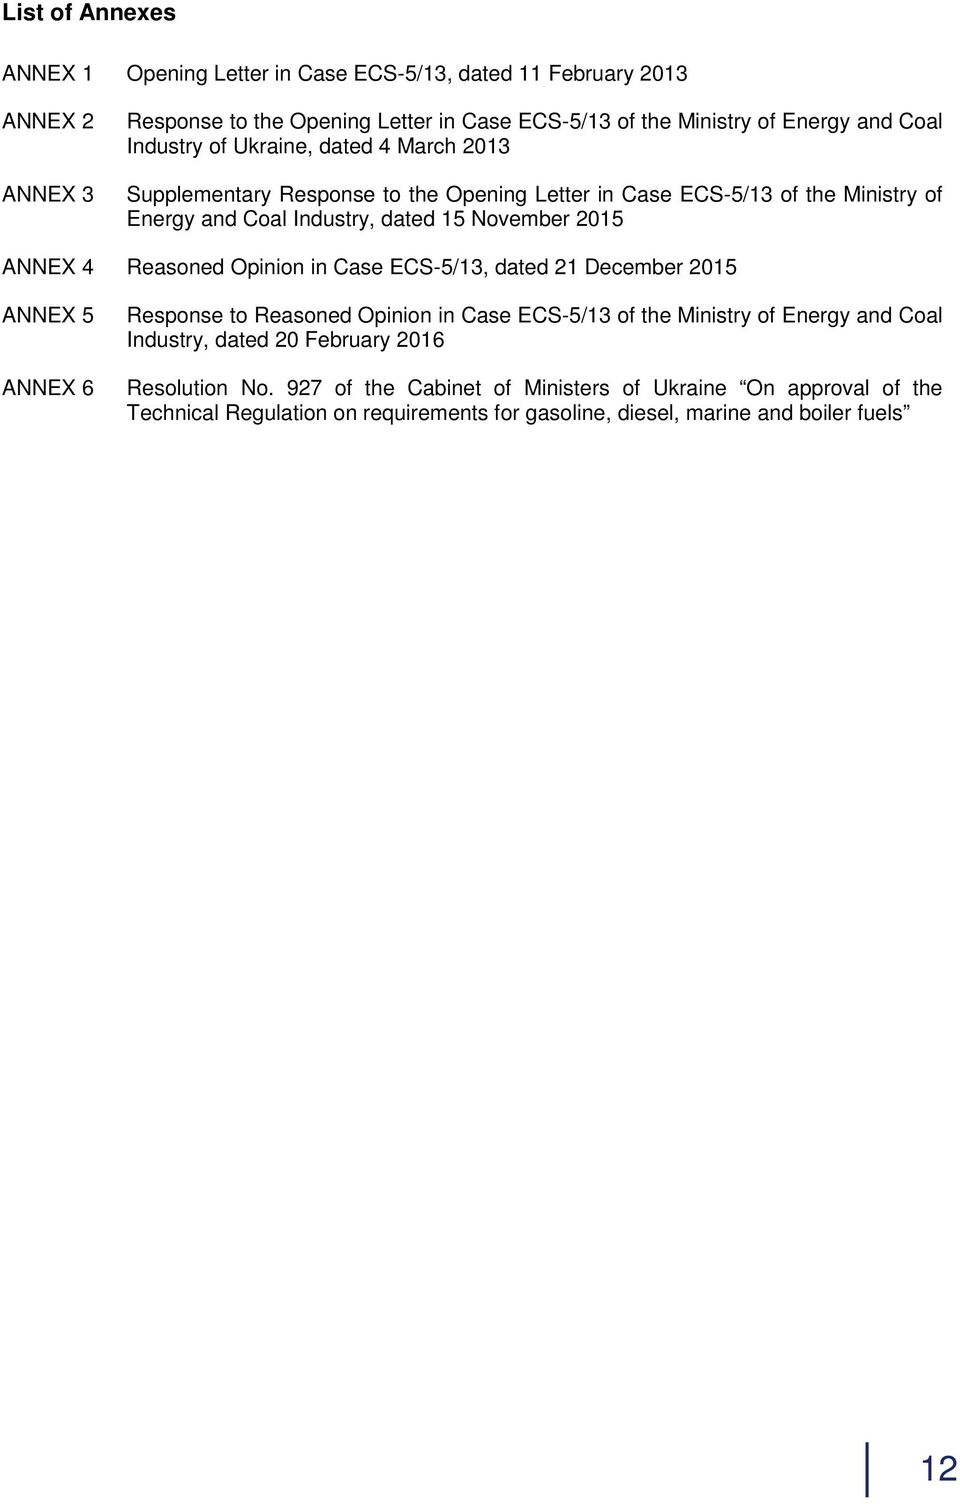 ANNEX 4 Reasoned Opinion in Case ECS-5/13, dated 21 December 2015 ANNEX 5 ANNEX 6 Response to Reasoned Opinion in Case ECS-5/13 of the Ministry of Energy and Coal Industry,